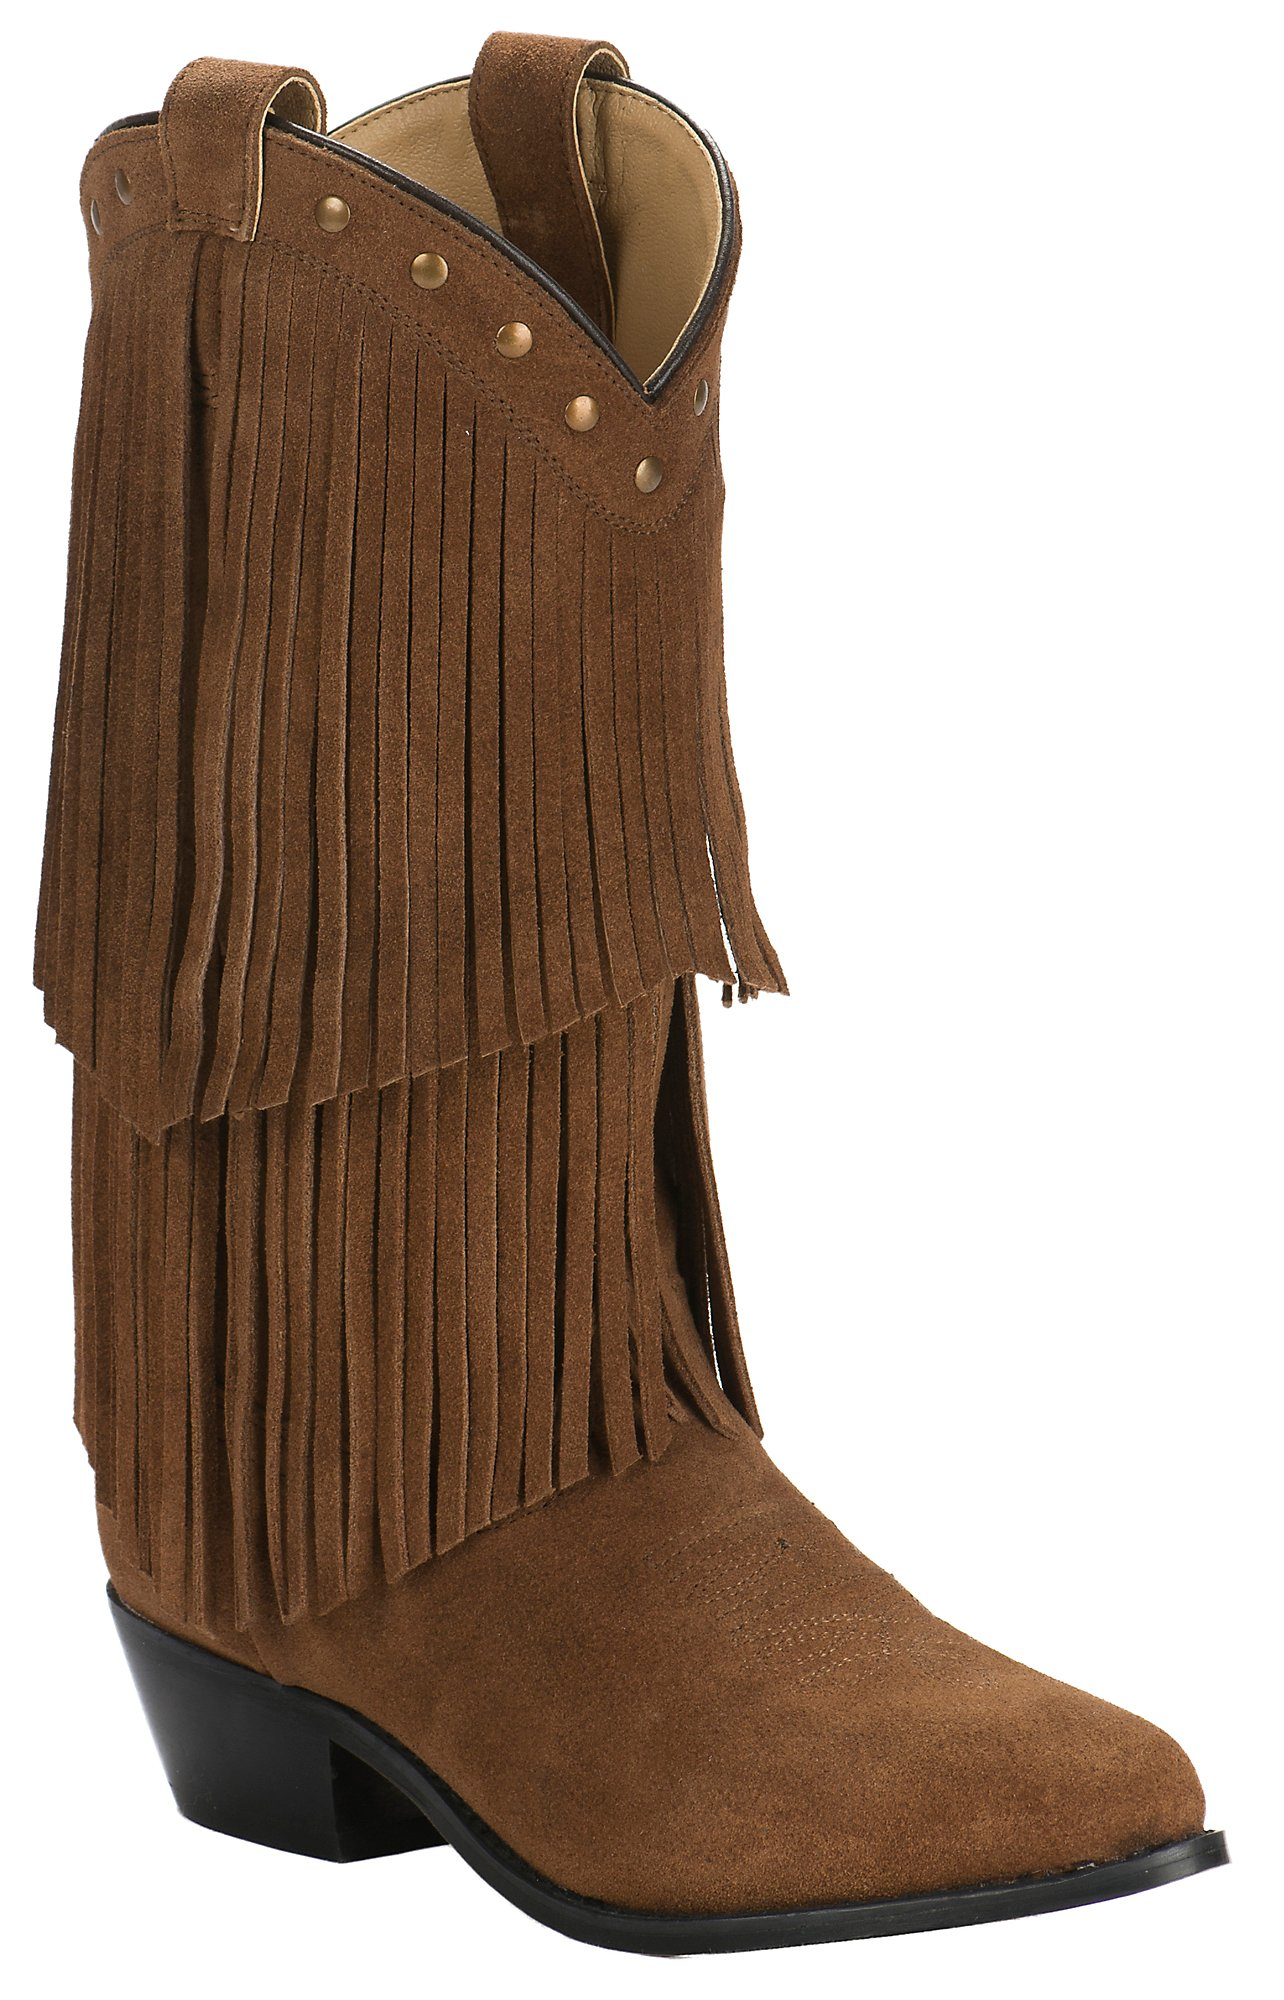 Smoky Mountain Women s Rust Suede with Fringe Western Traditional Toe Western  Boots 49d17b31a51